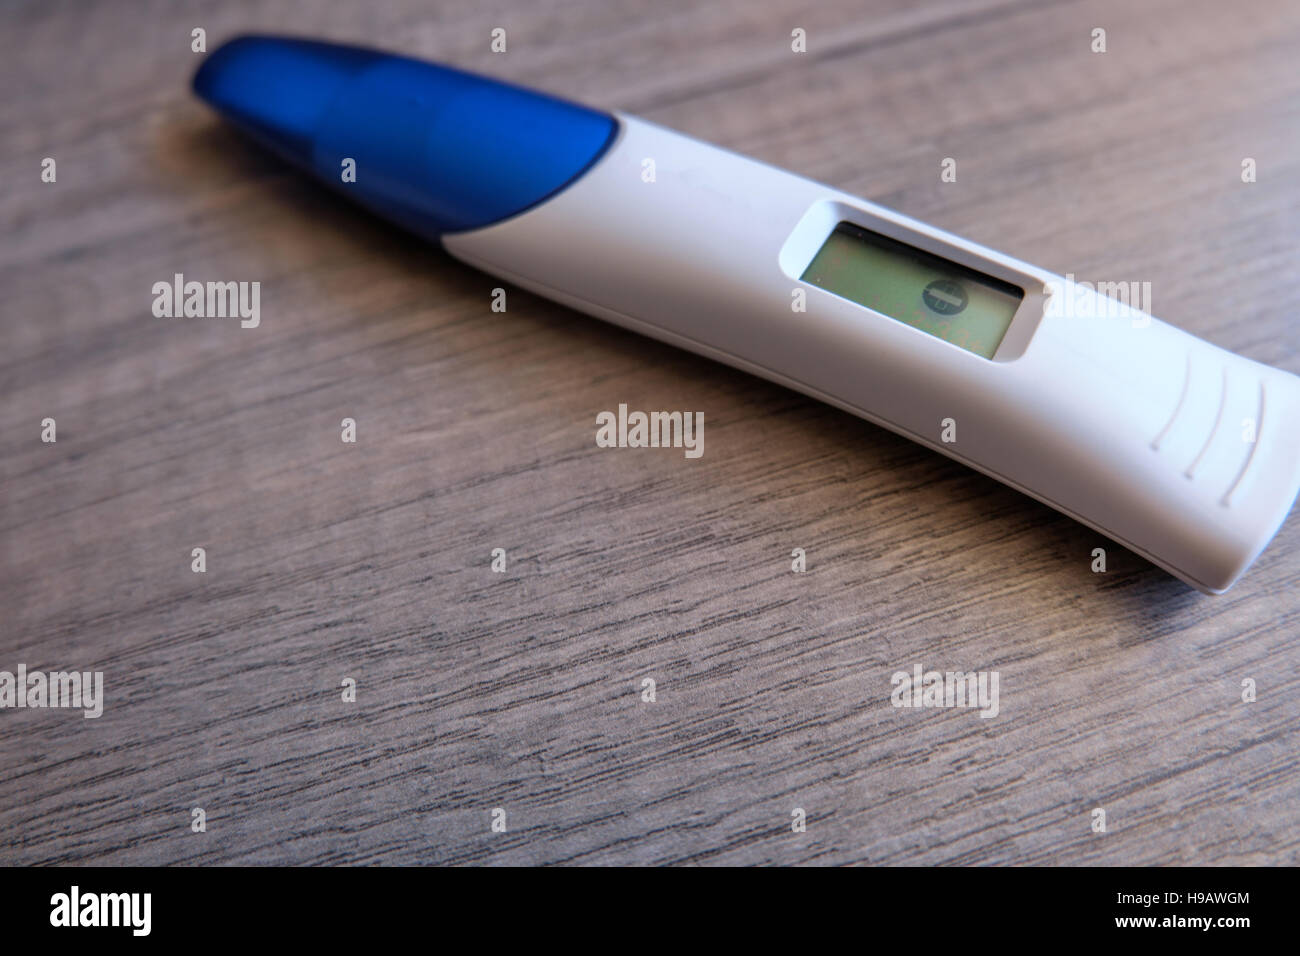 Digital Pregnancy Test With Negative Result On Wooden Background